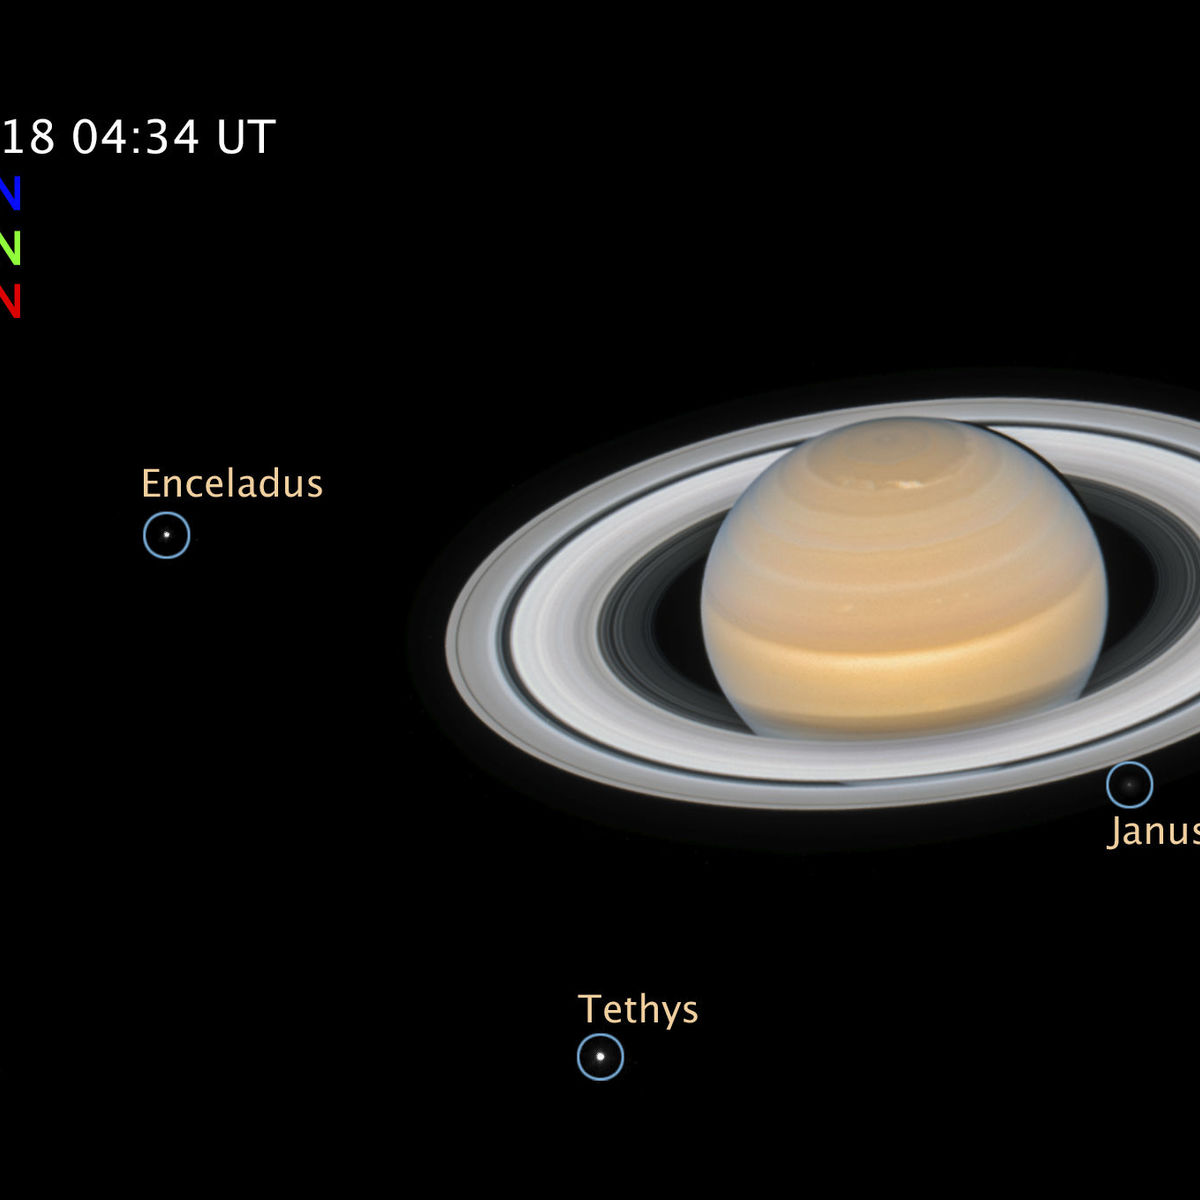 Saturn's moons, labeled in this Hubble image. Credit: NASA, ESA, A. Simon (GSFC) and the OPAL Team, and J. DePasquale (STScI)